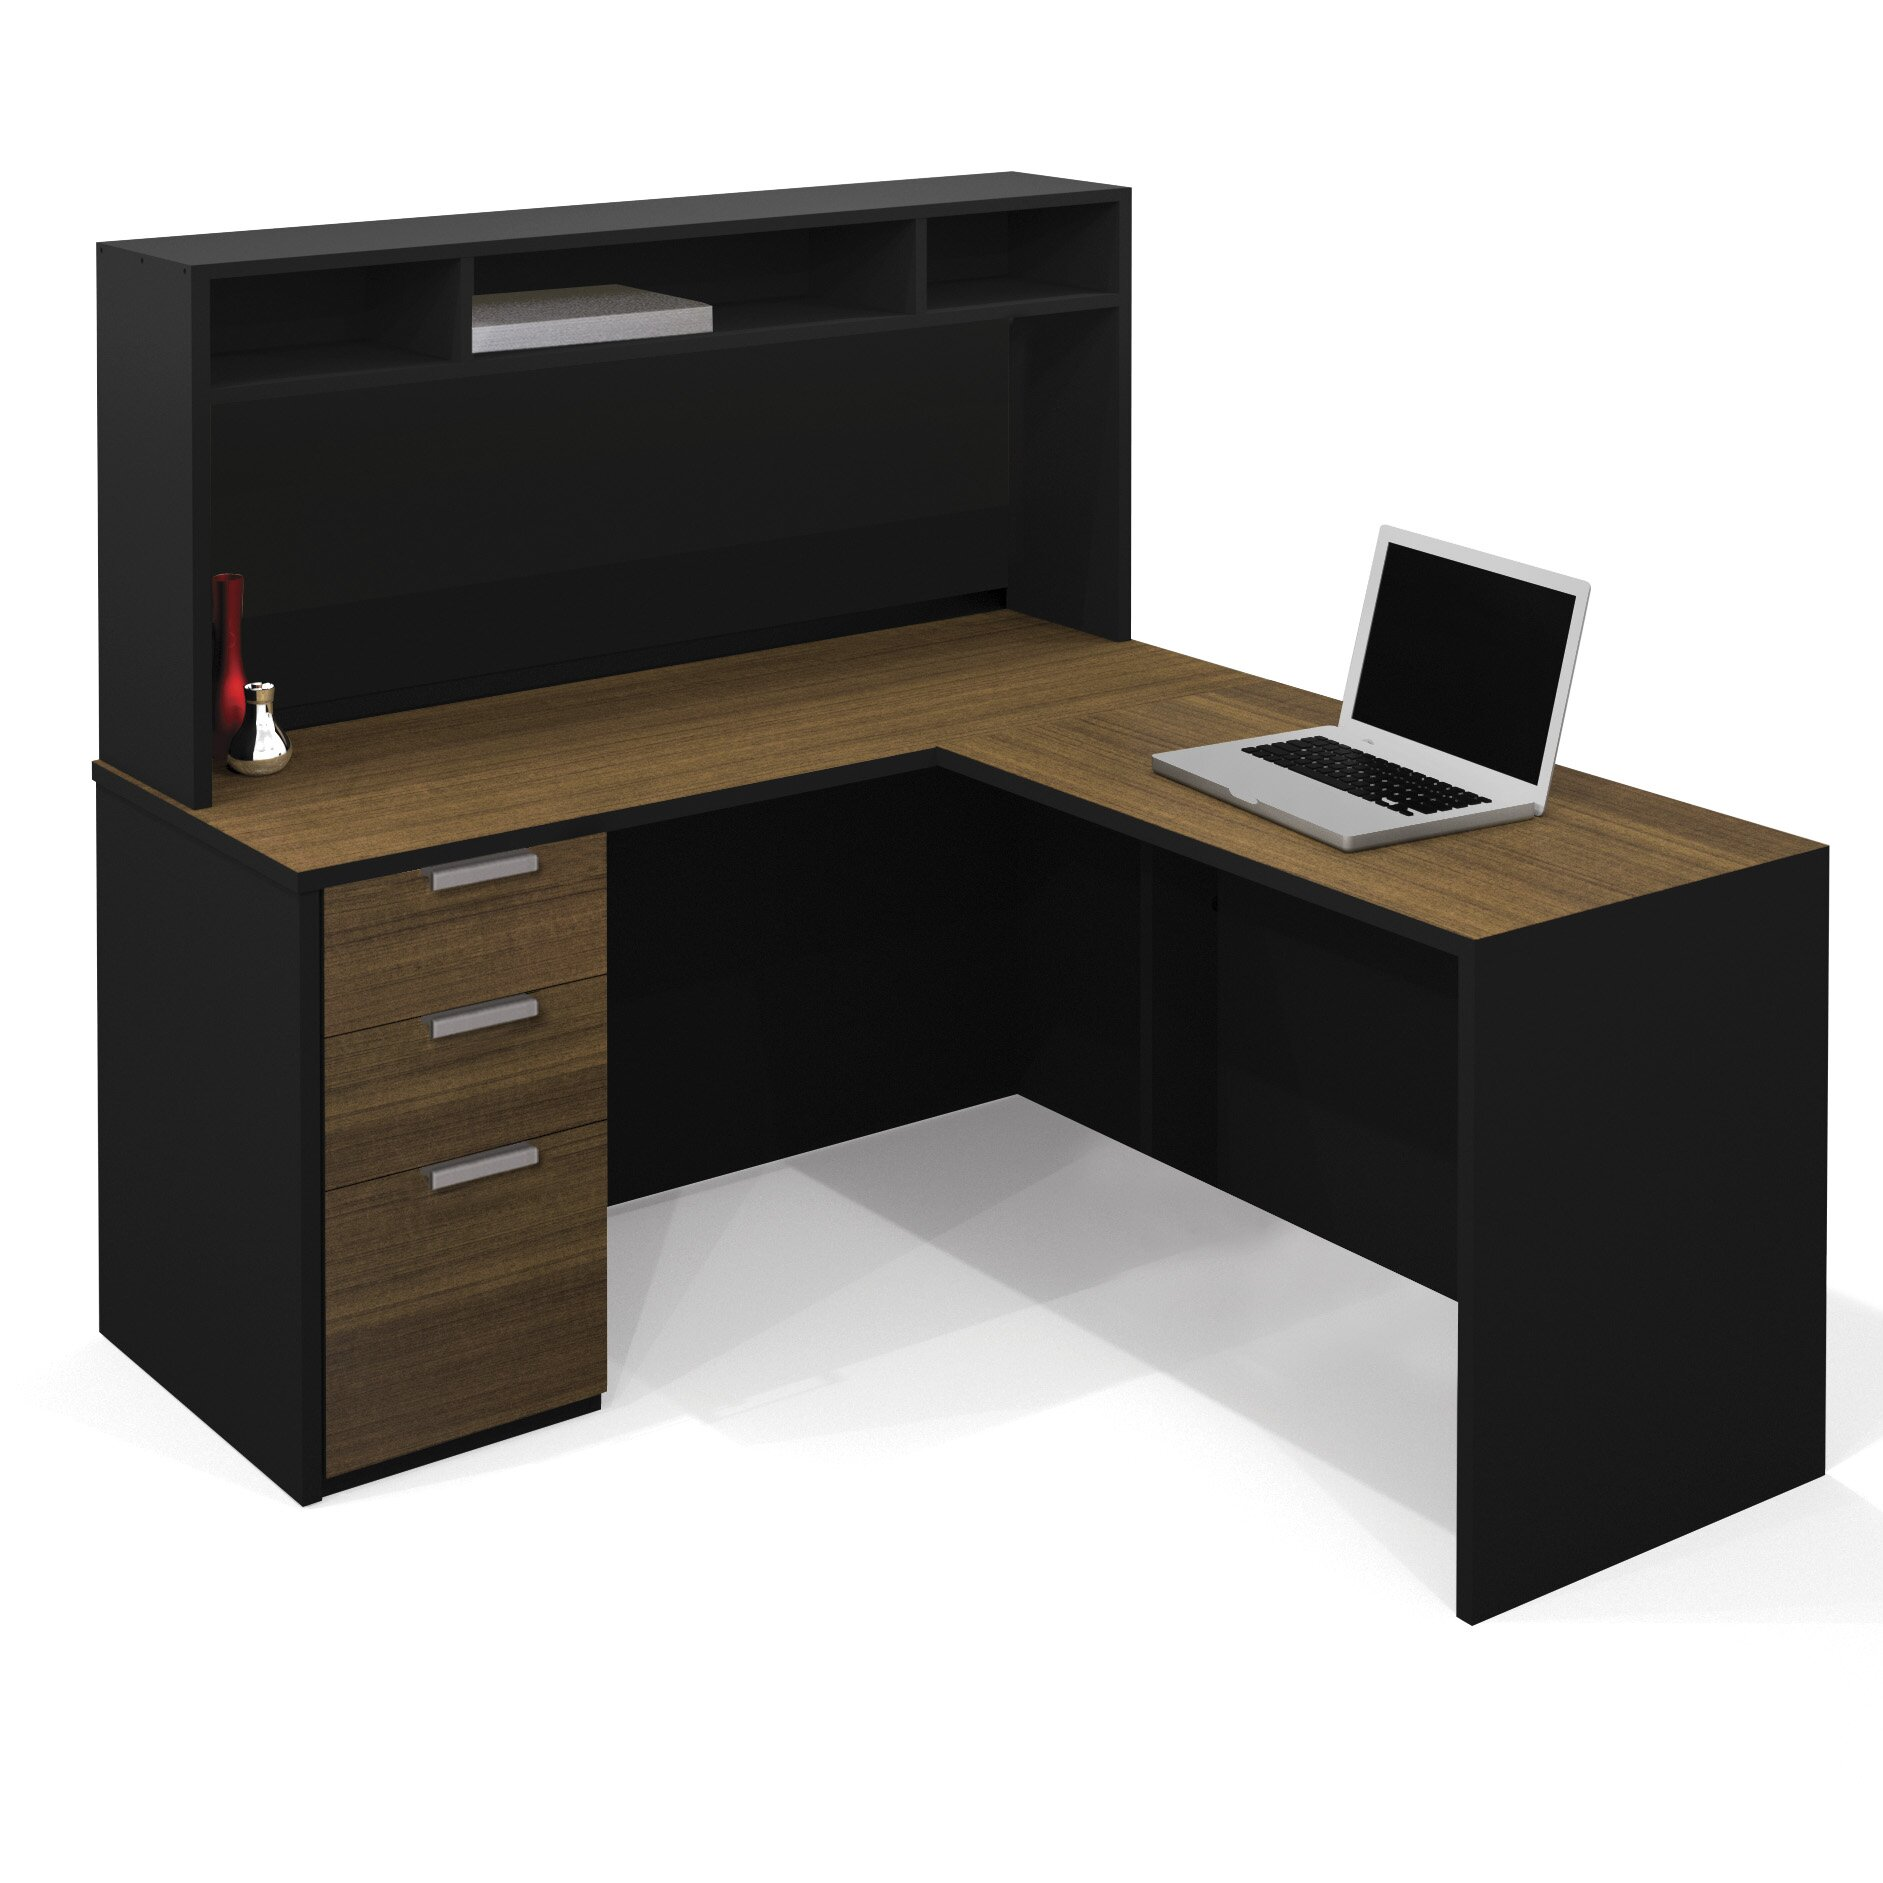 Bestar Pro Concept L Shape Desk fice Suite with Hutch